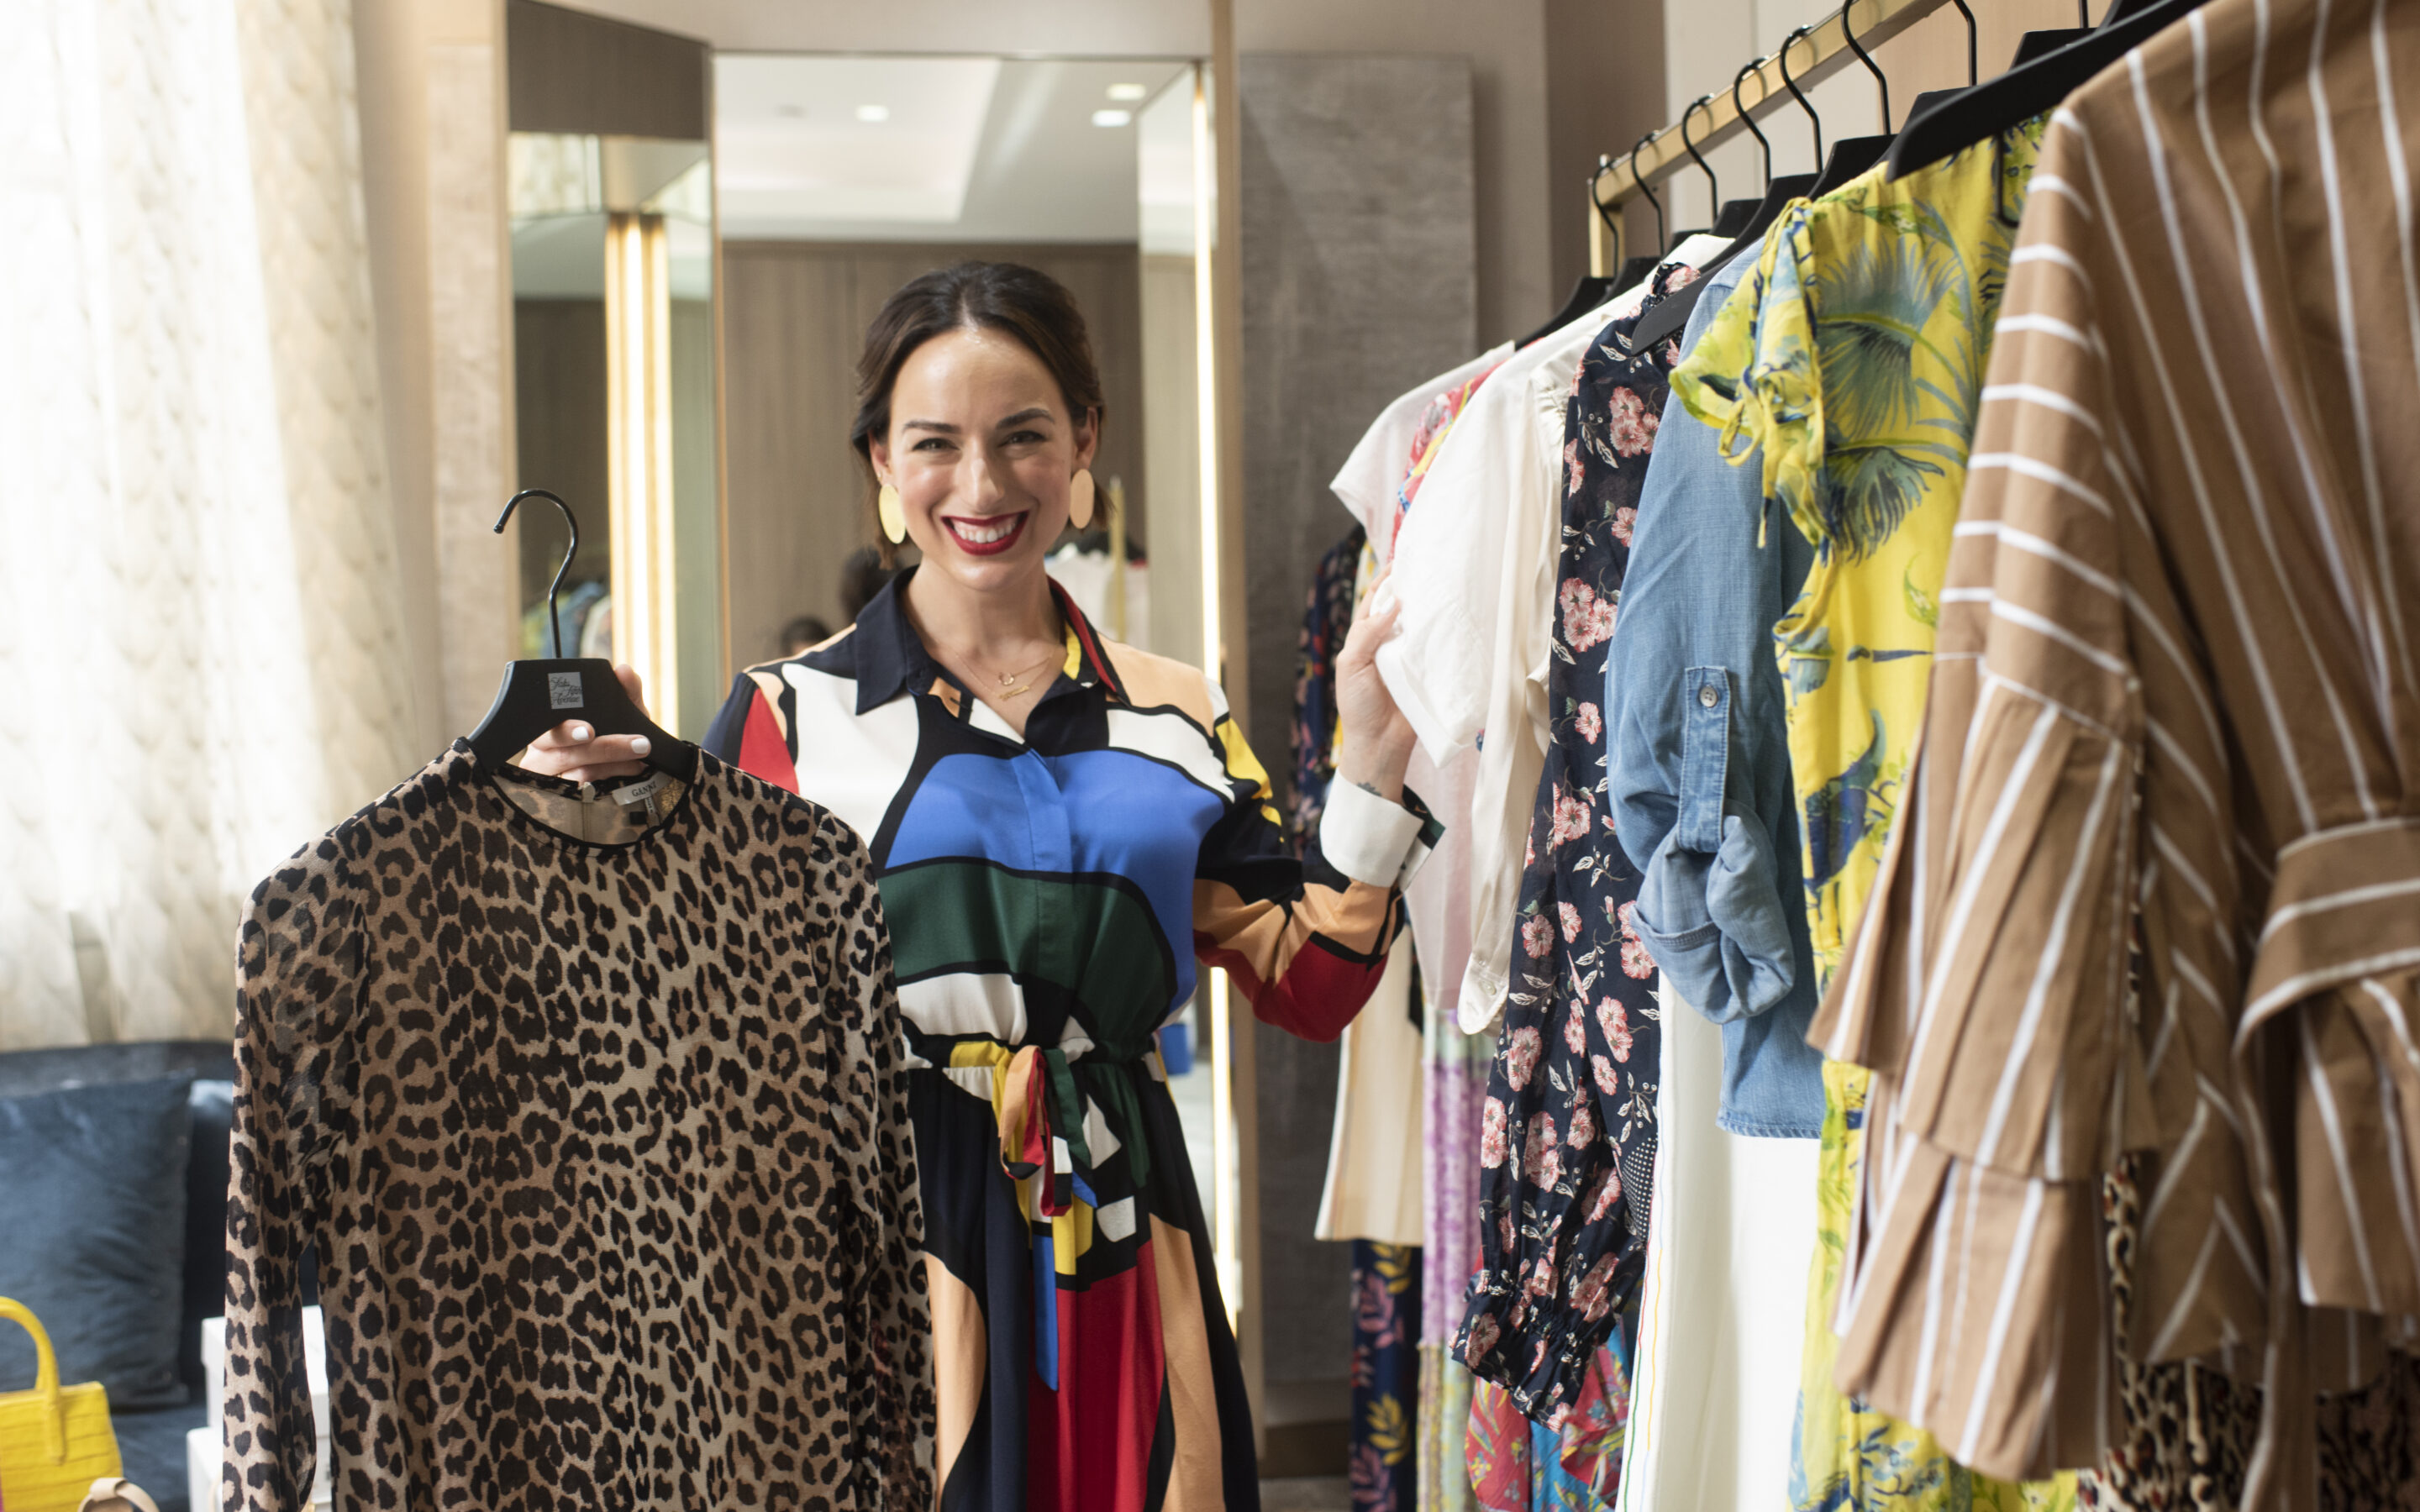 Outdated Fashion: 5 Outdated Items to Toss (And a Stylish Replacement)